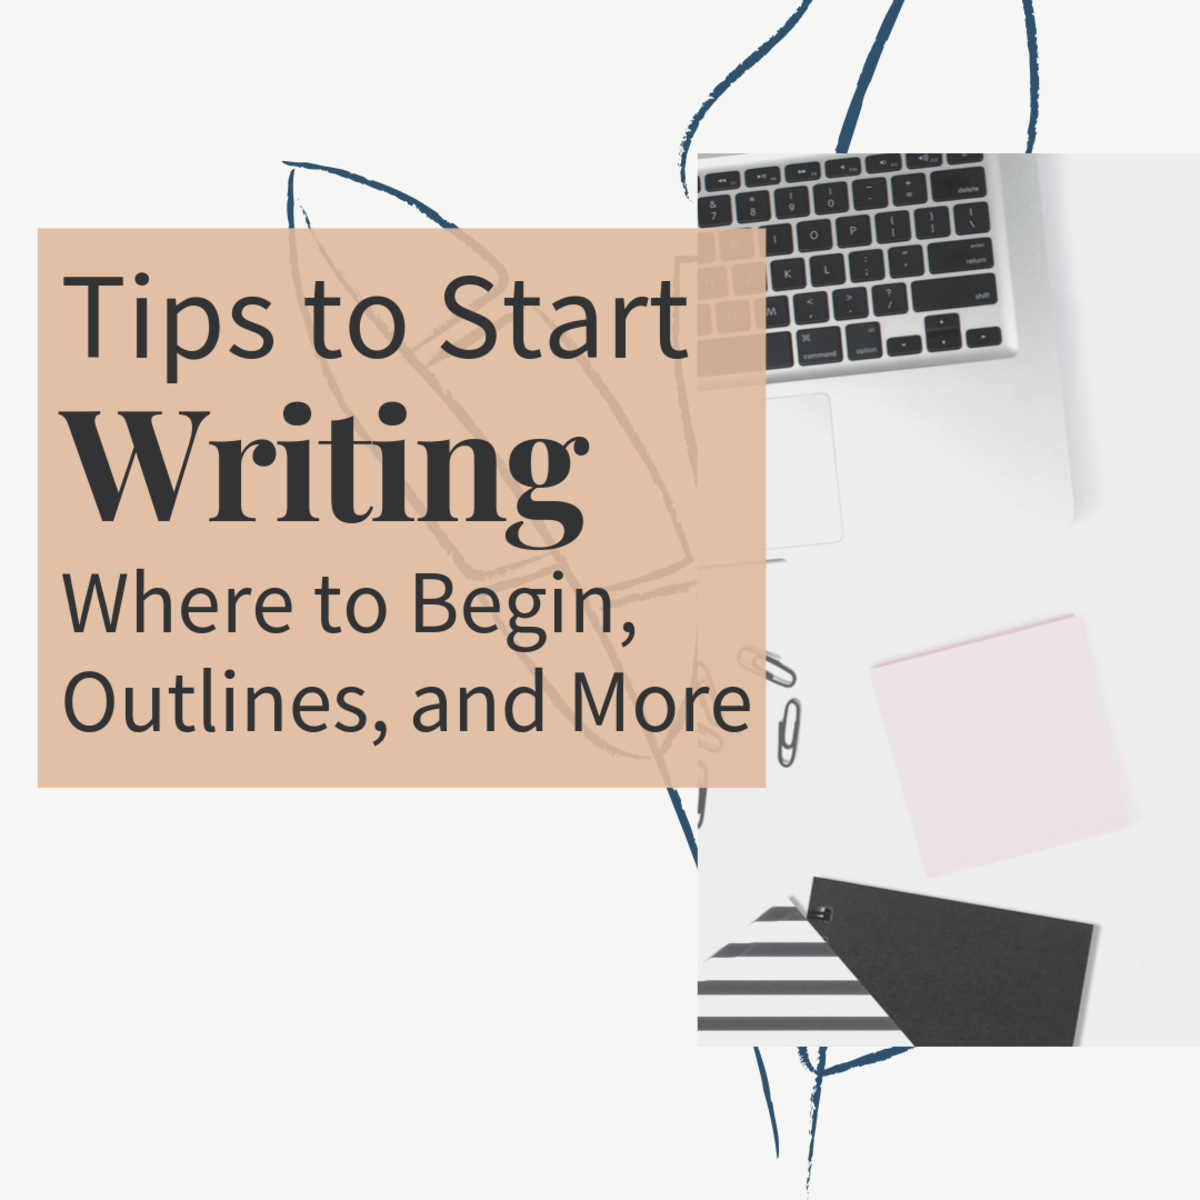 Tips to Start Writing